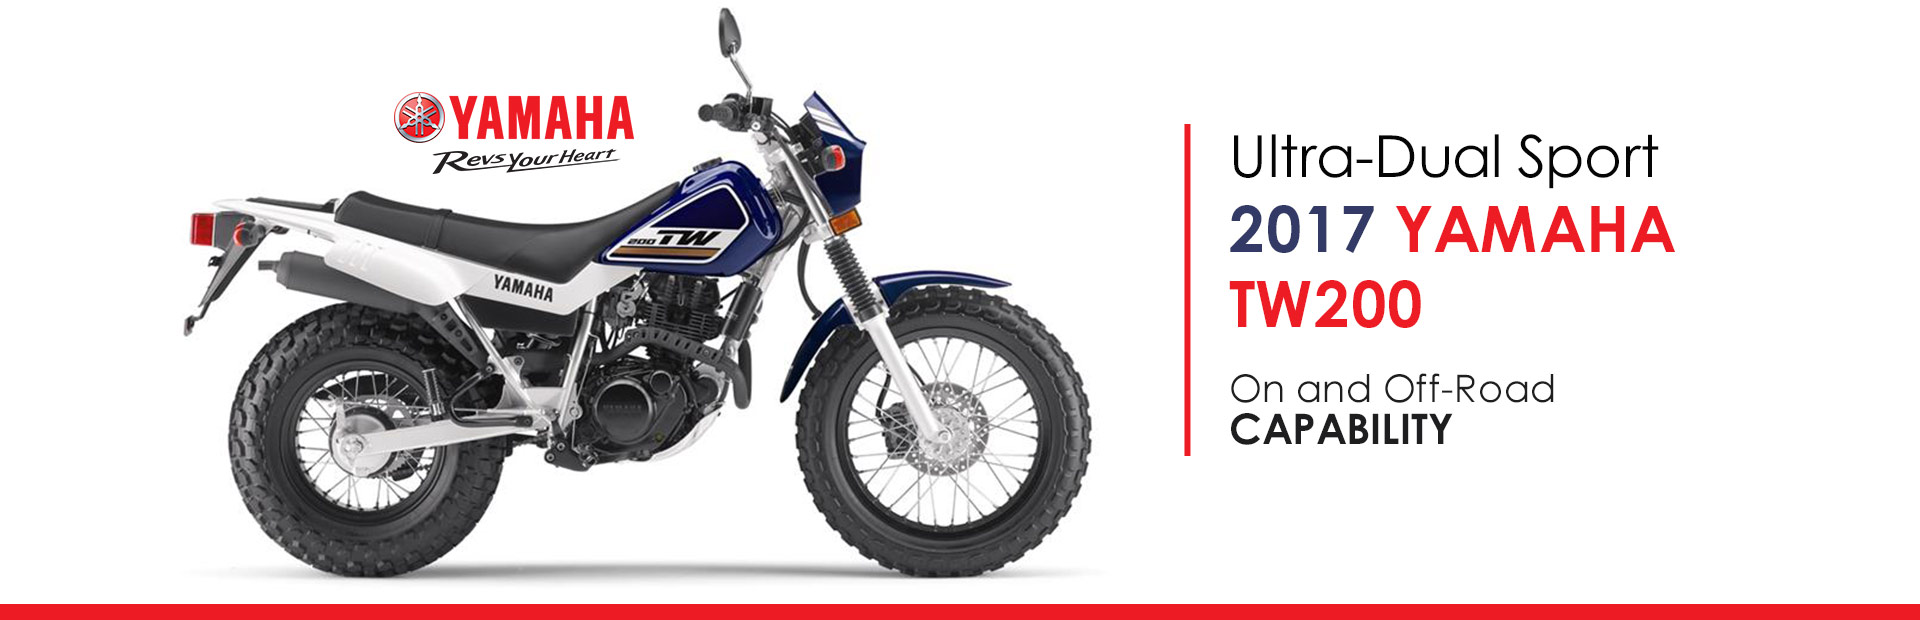 2017 Yamaha TW200: Click here to view the model.